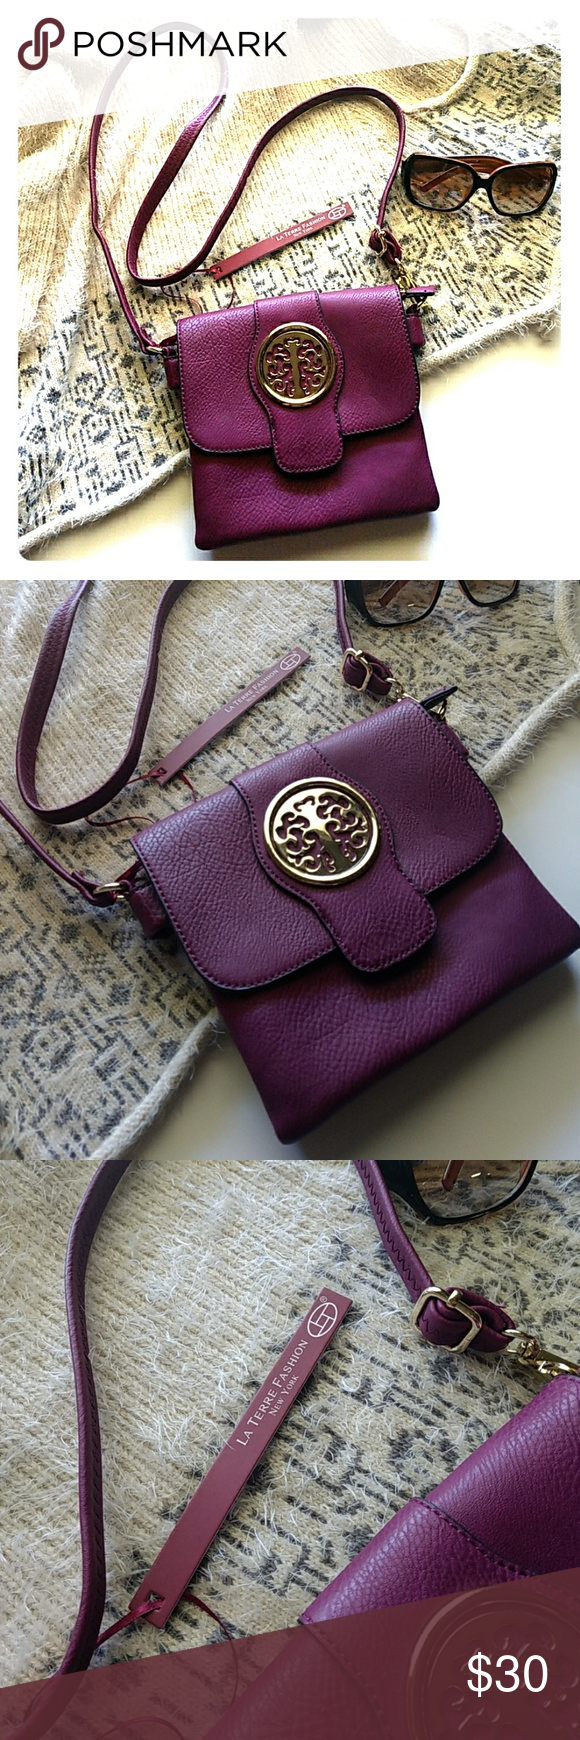 Resembles A Tory Burch Handbag But It S Not Long Adjule Strap La Terre Fashion New York Bags Crossbody